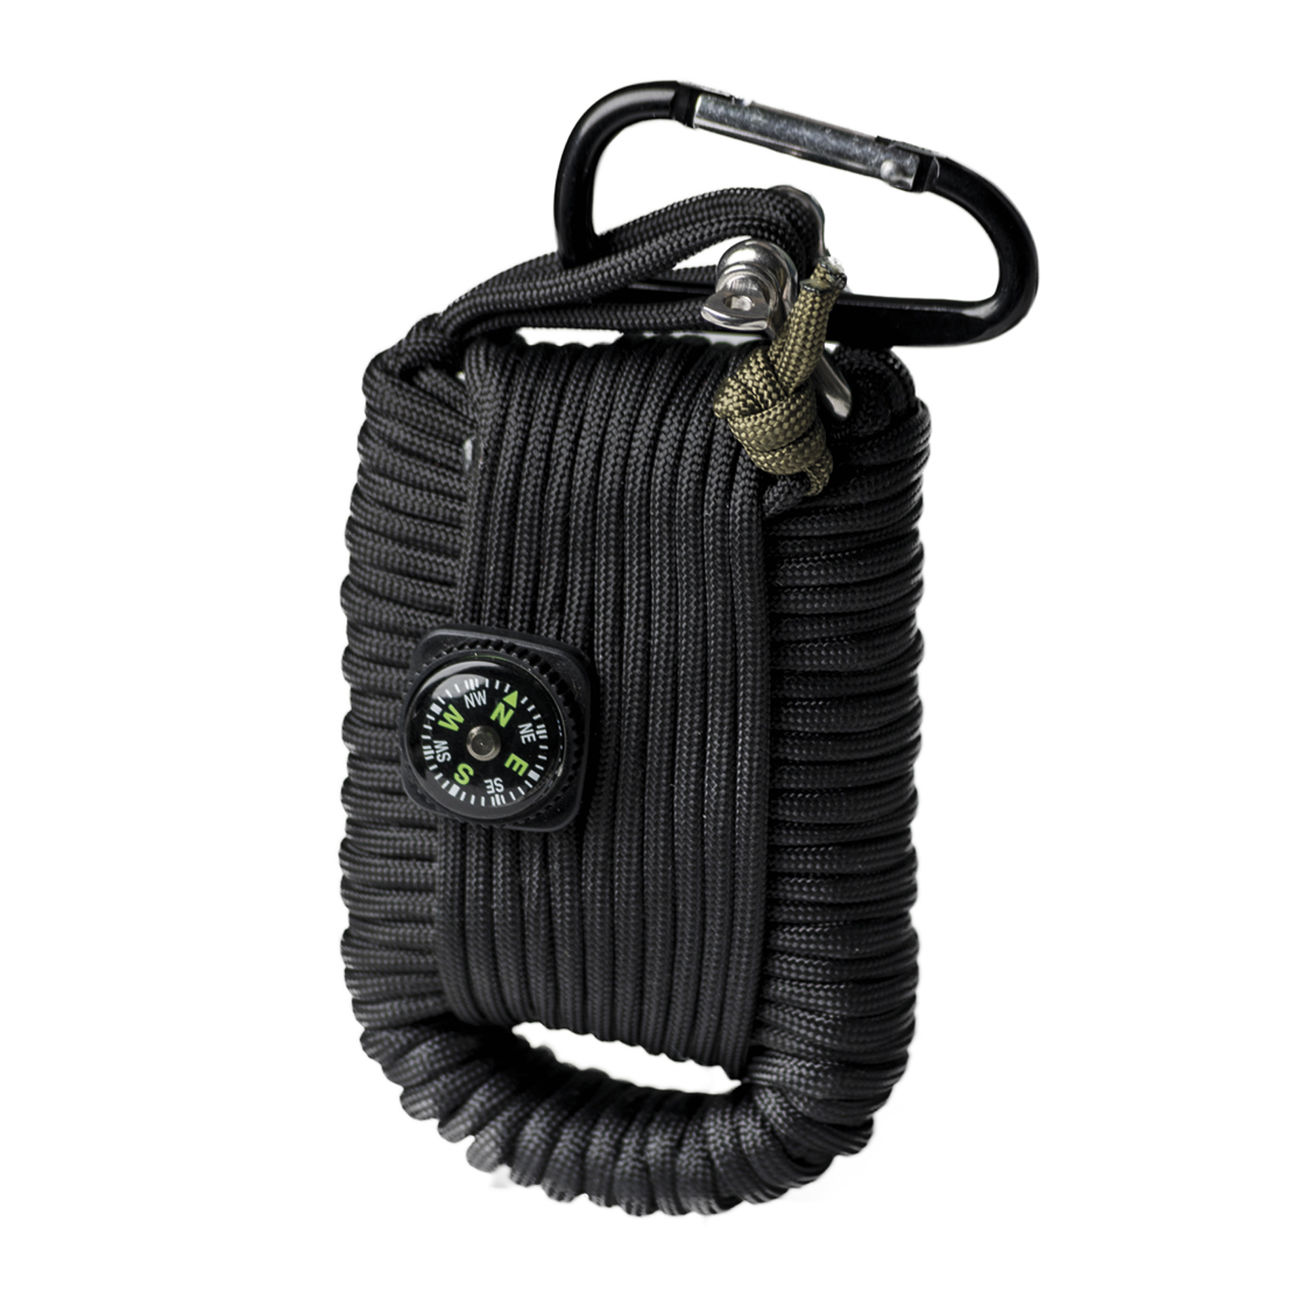 Mil-Tec Paracord Survival Kit large schwarz 2